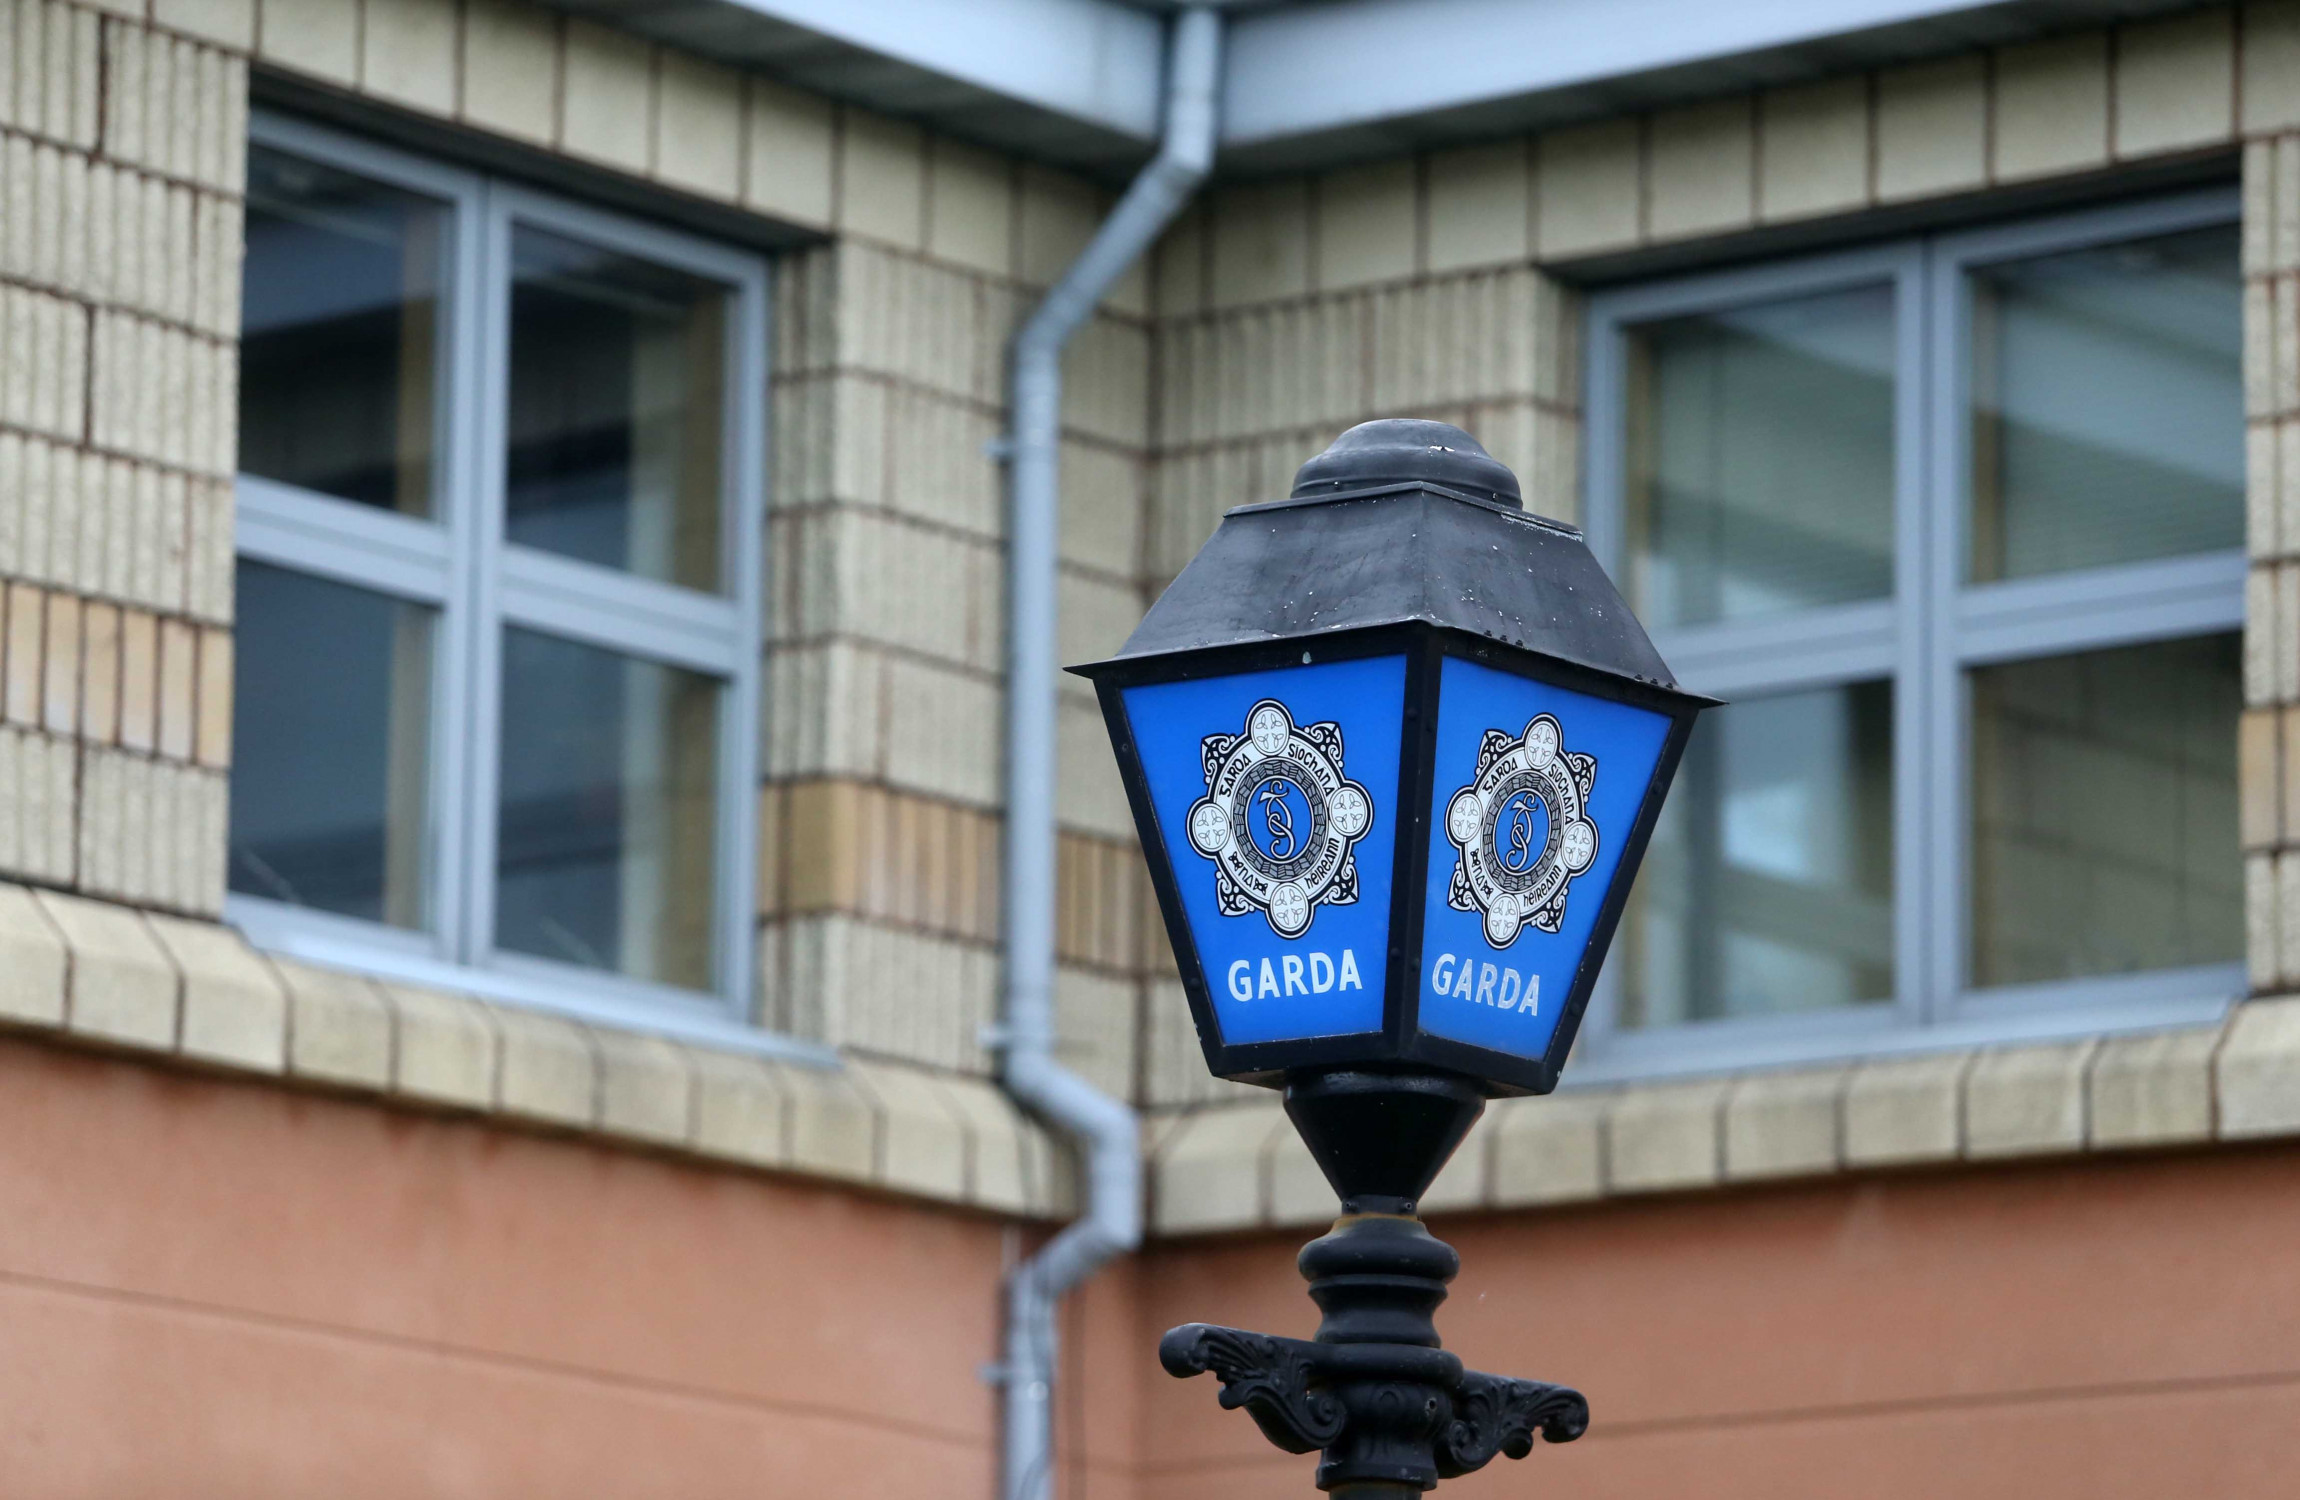 11 people have been arrested as part of Munster child abuse investigation